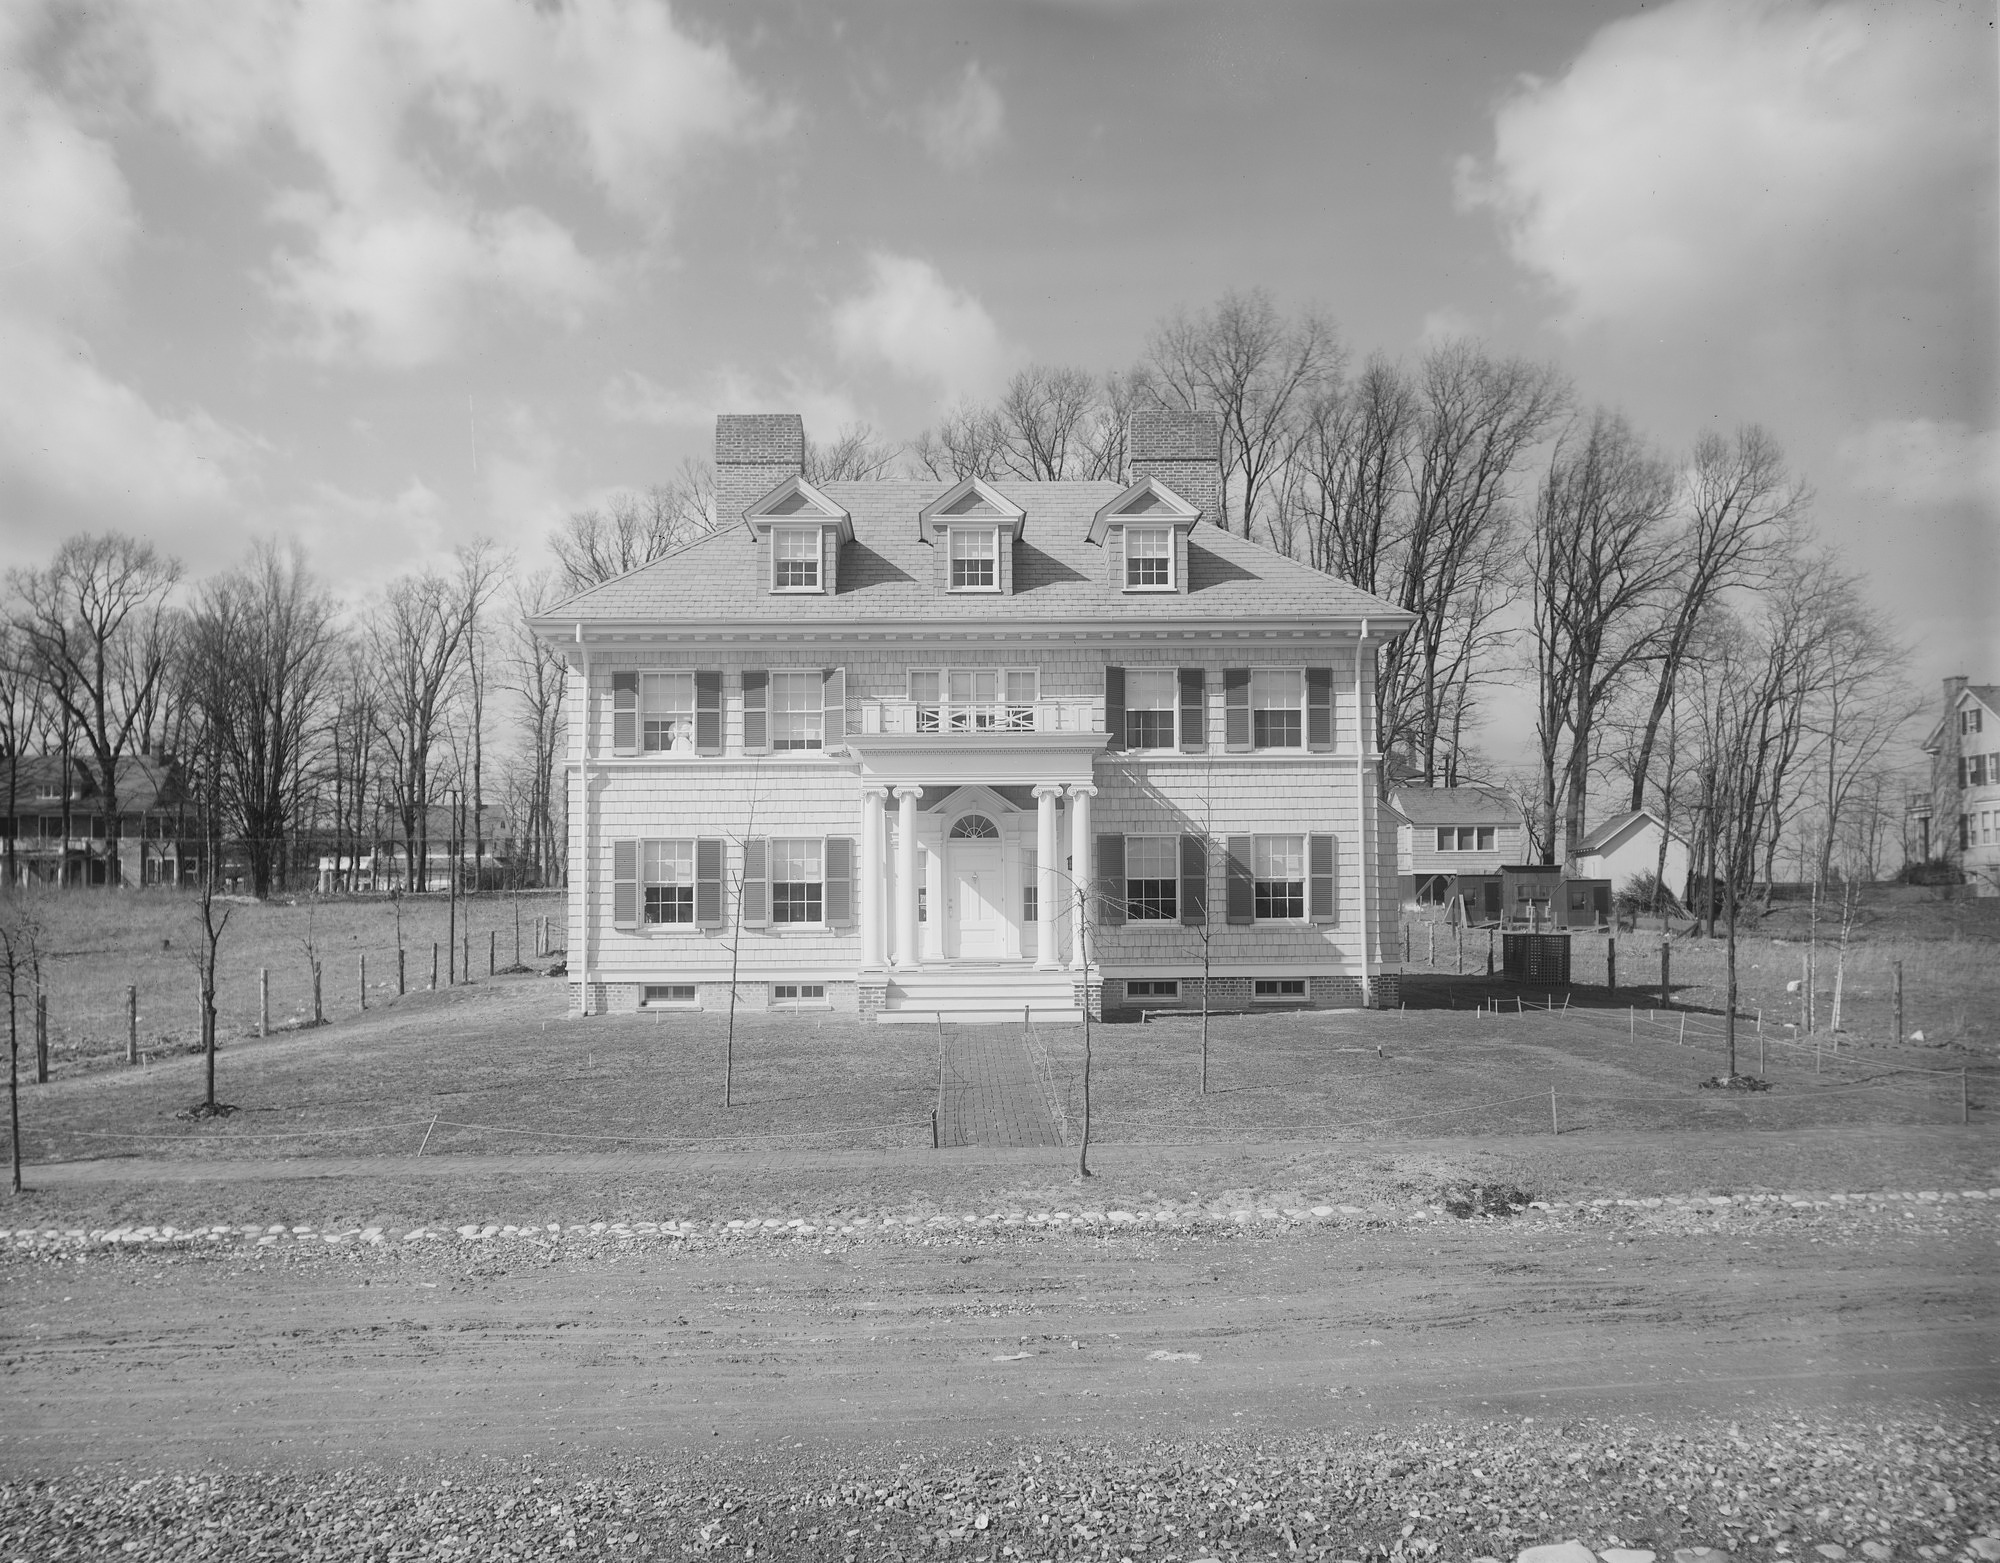 [Ogilby Garden]: front of house, with an unpaved Primrose Street in the foreground.